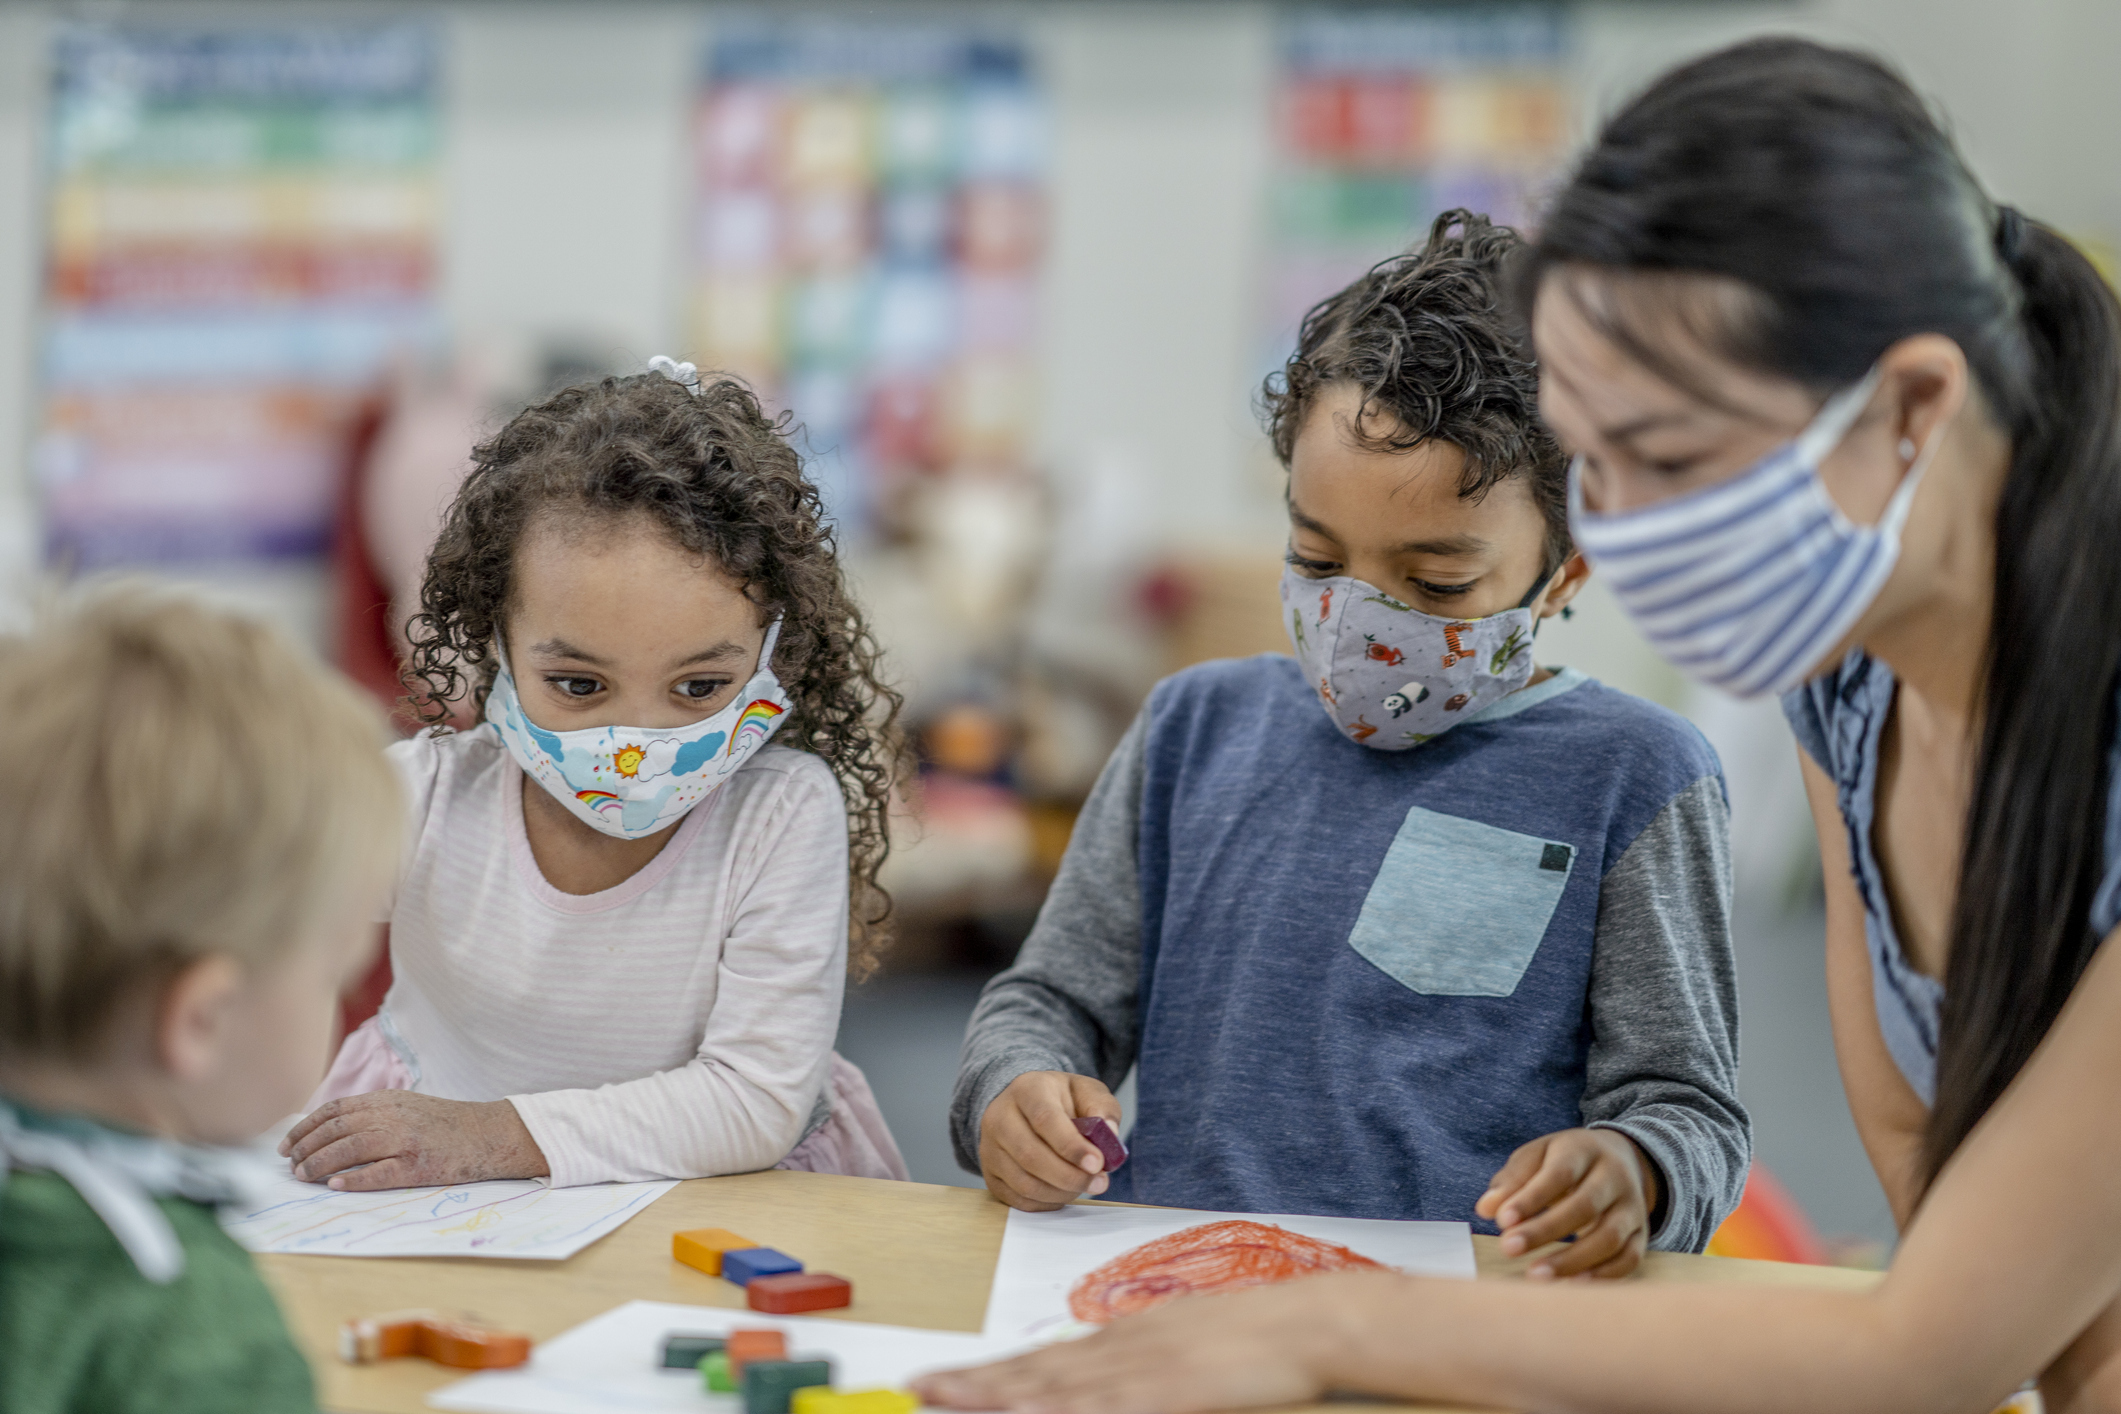 Children coloring at a table while wearing protective face masks.